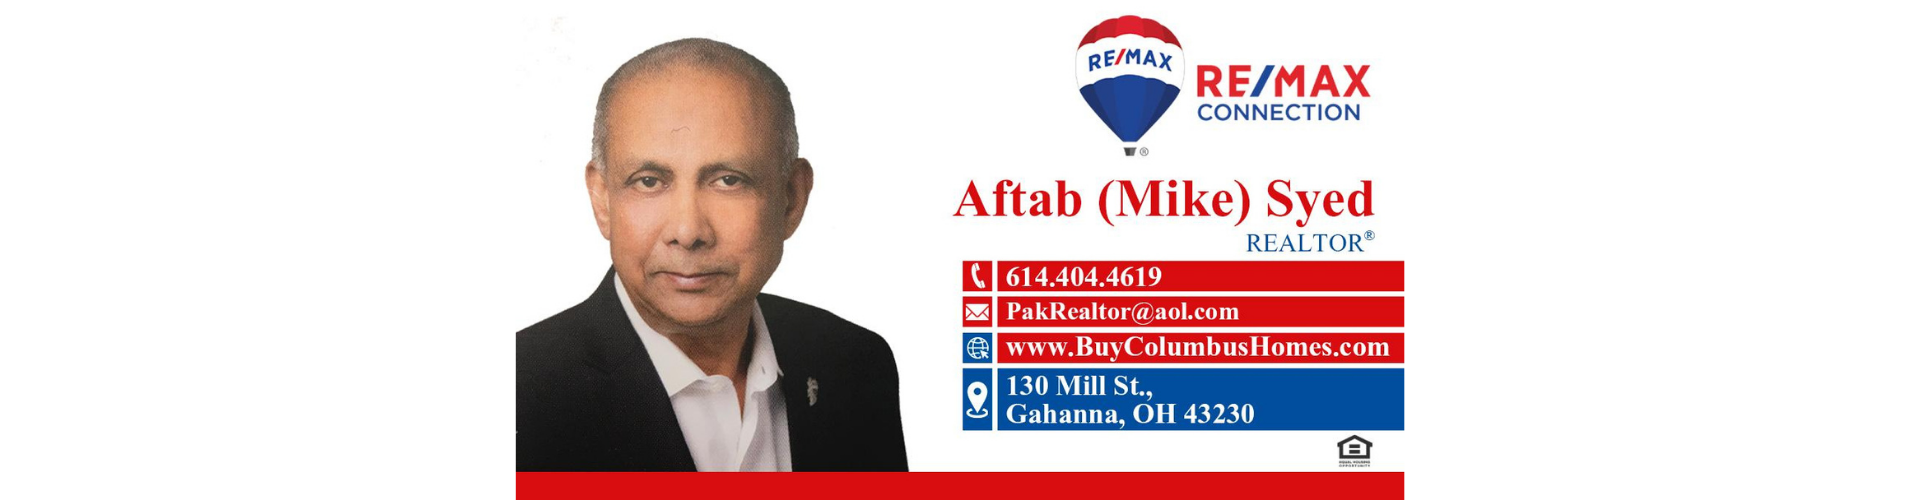 Aftab Syed Real Estate Broker RE/MAX